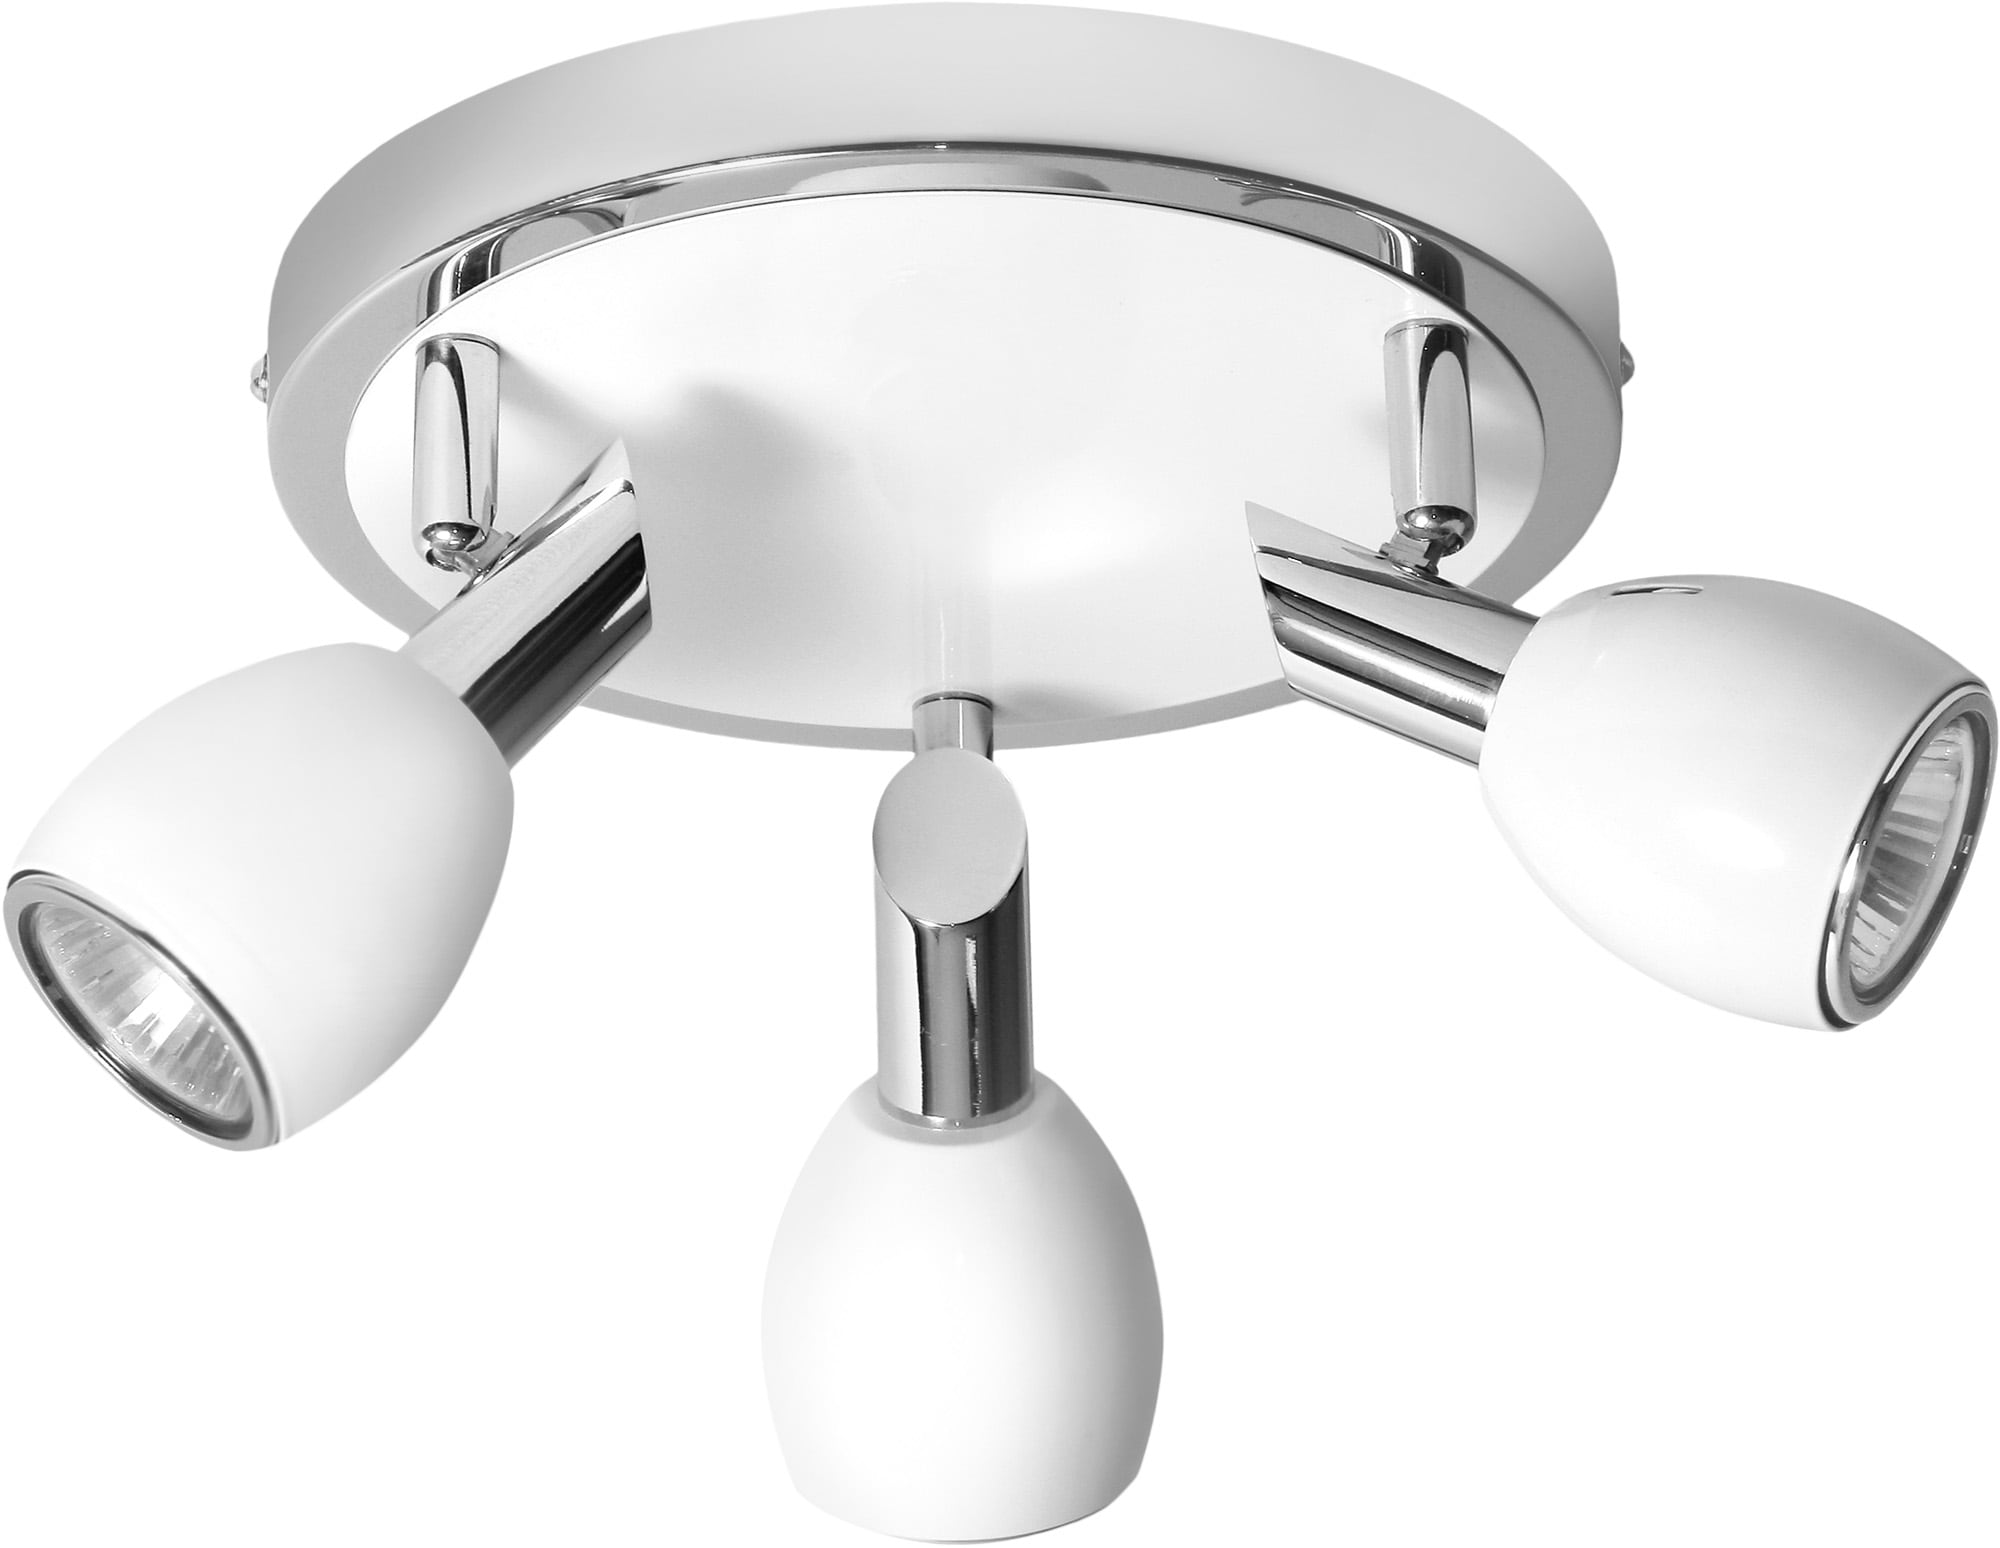 Ceiling Ceiling 3-point LED Colors White GU10